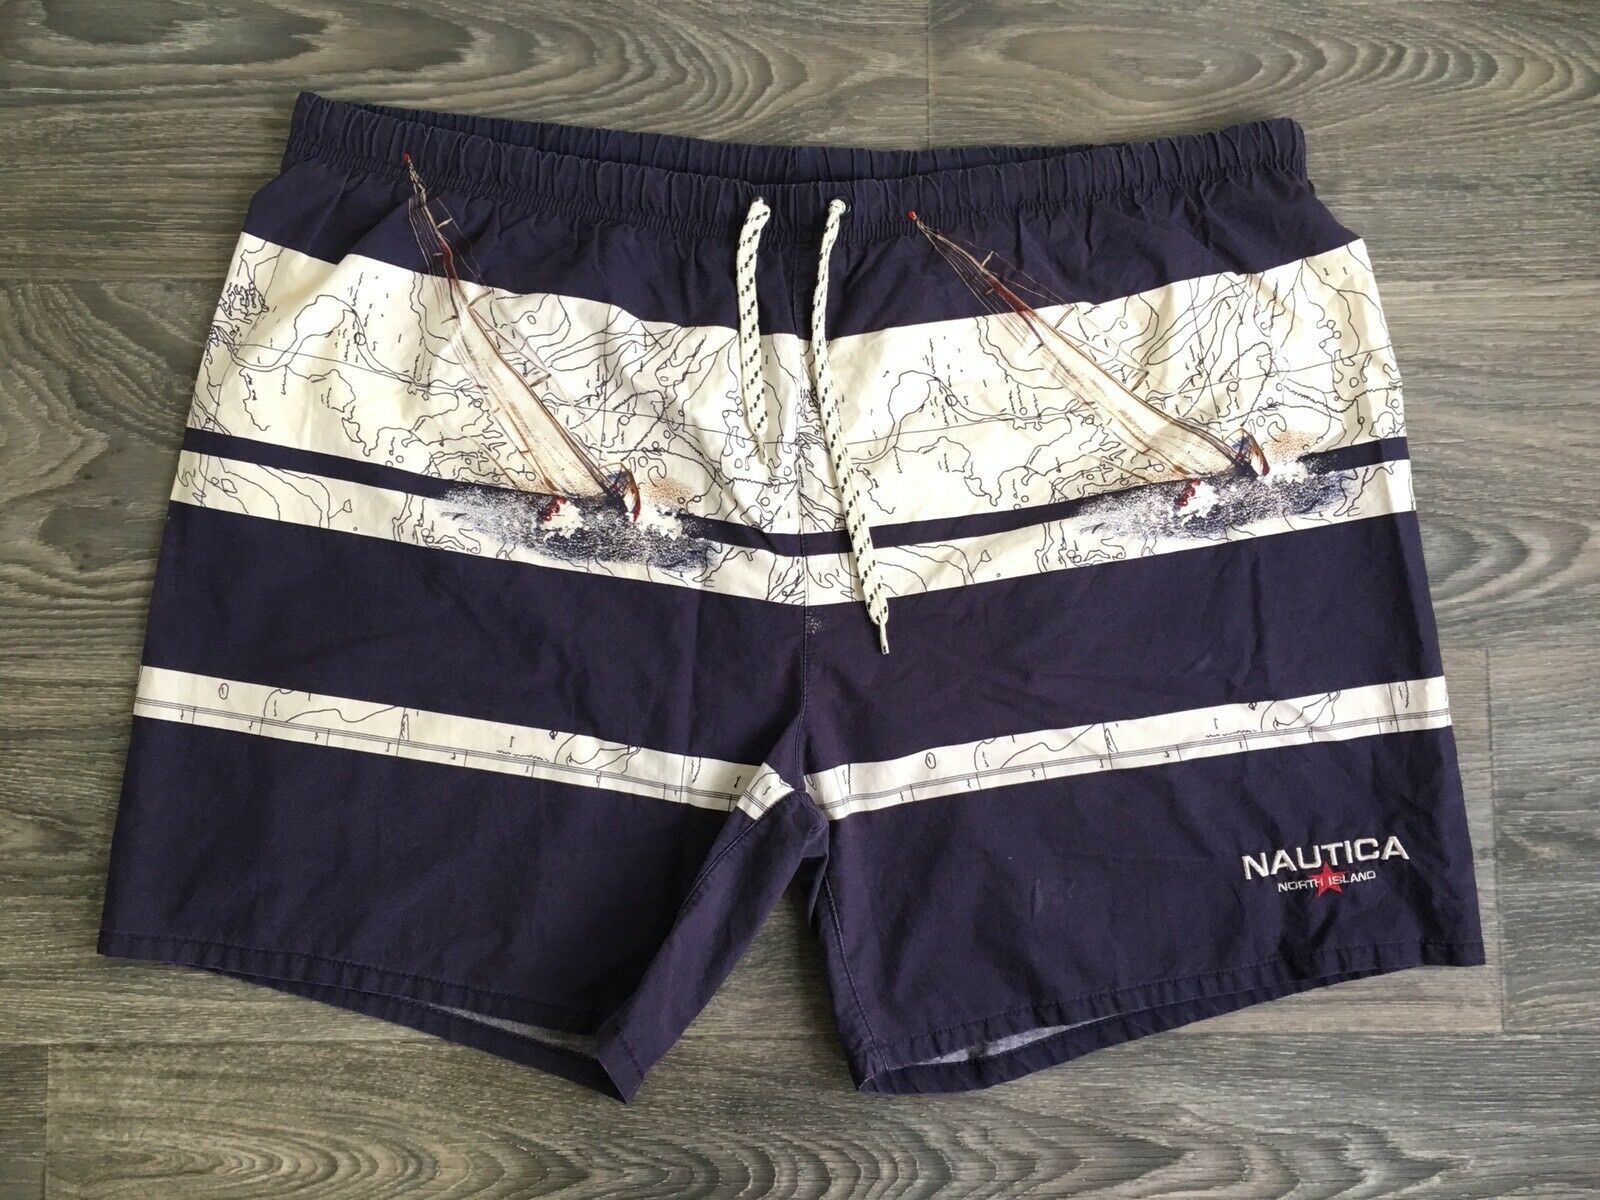 Nautica Swimming Trunks 90s Vtg Board Shorts Bathing Suit Spell Out Sail XL EUC